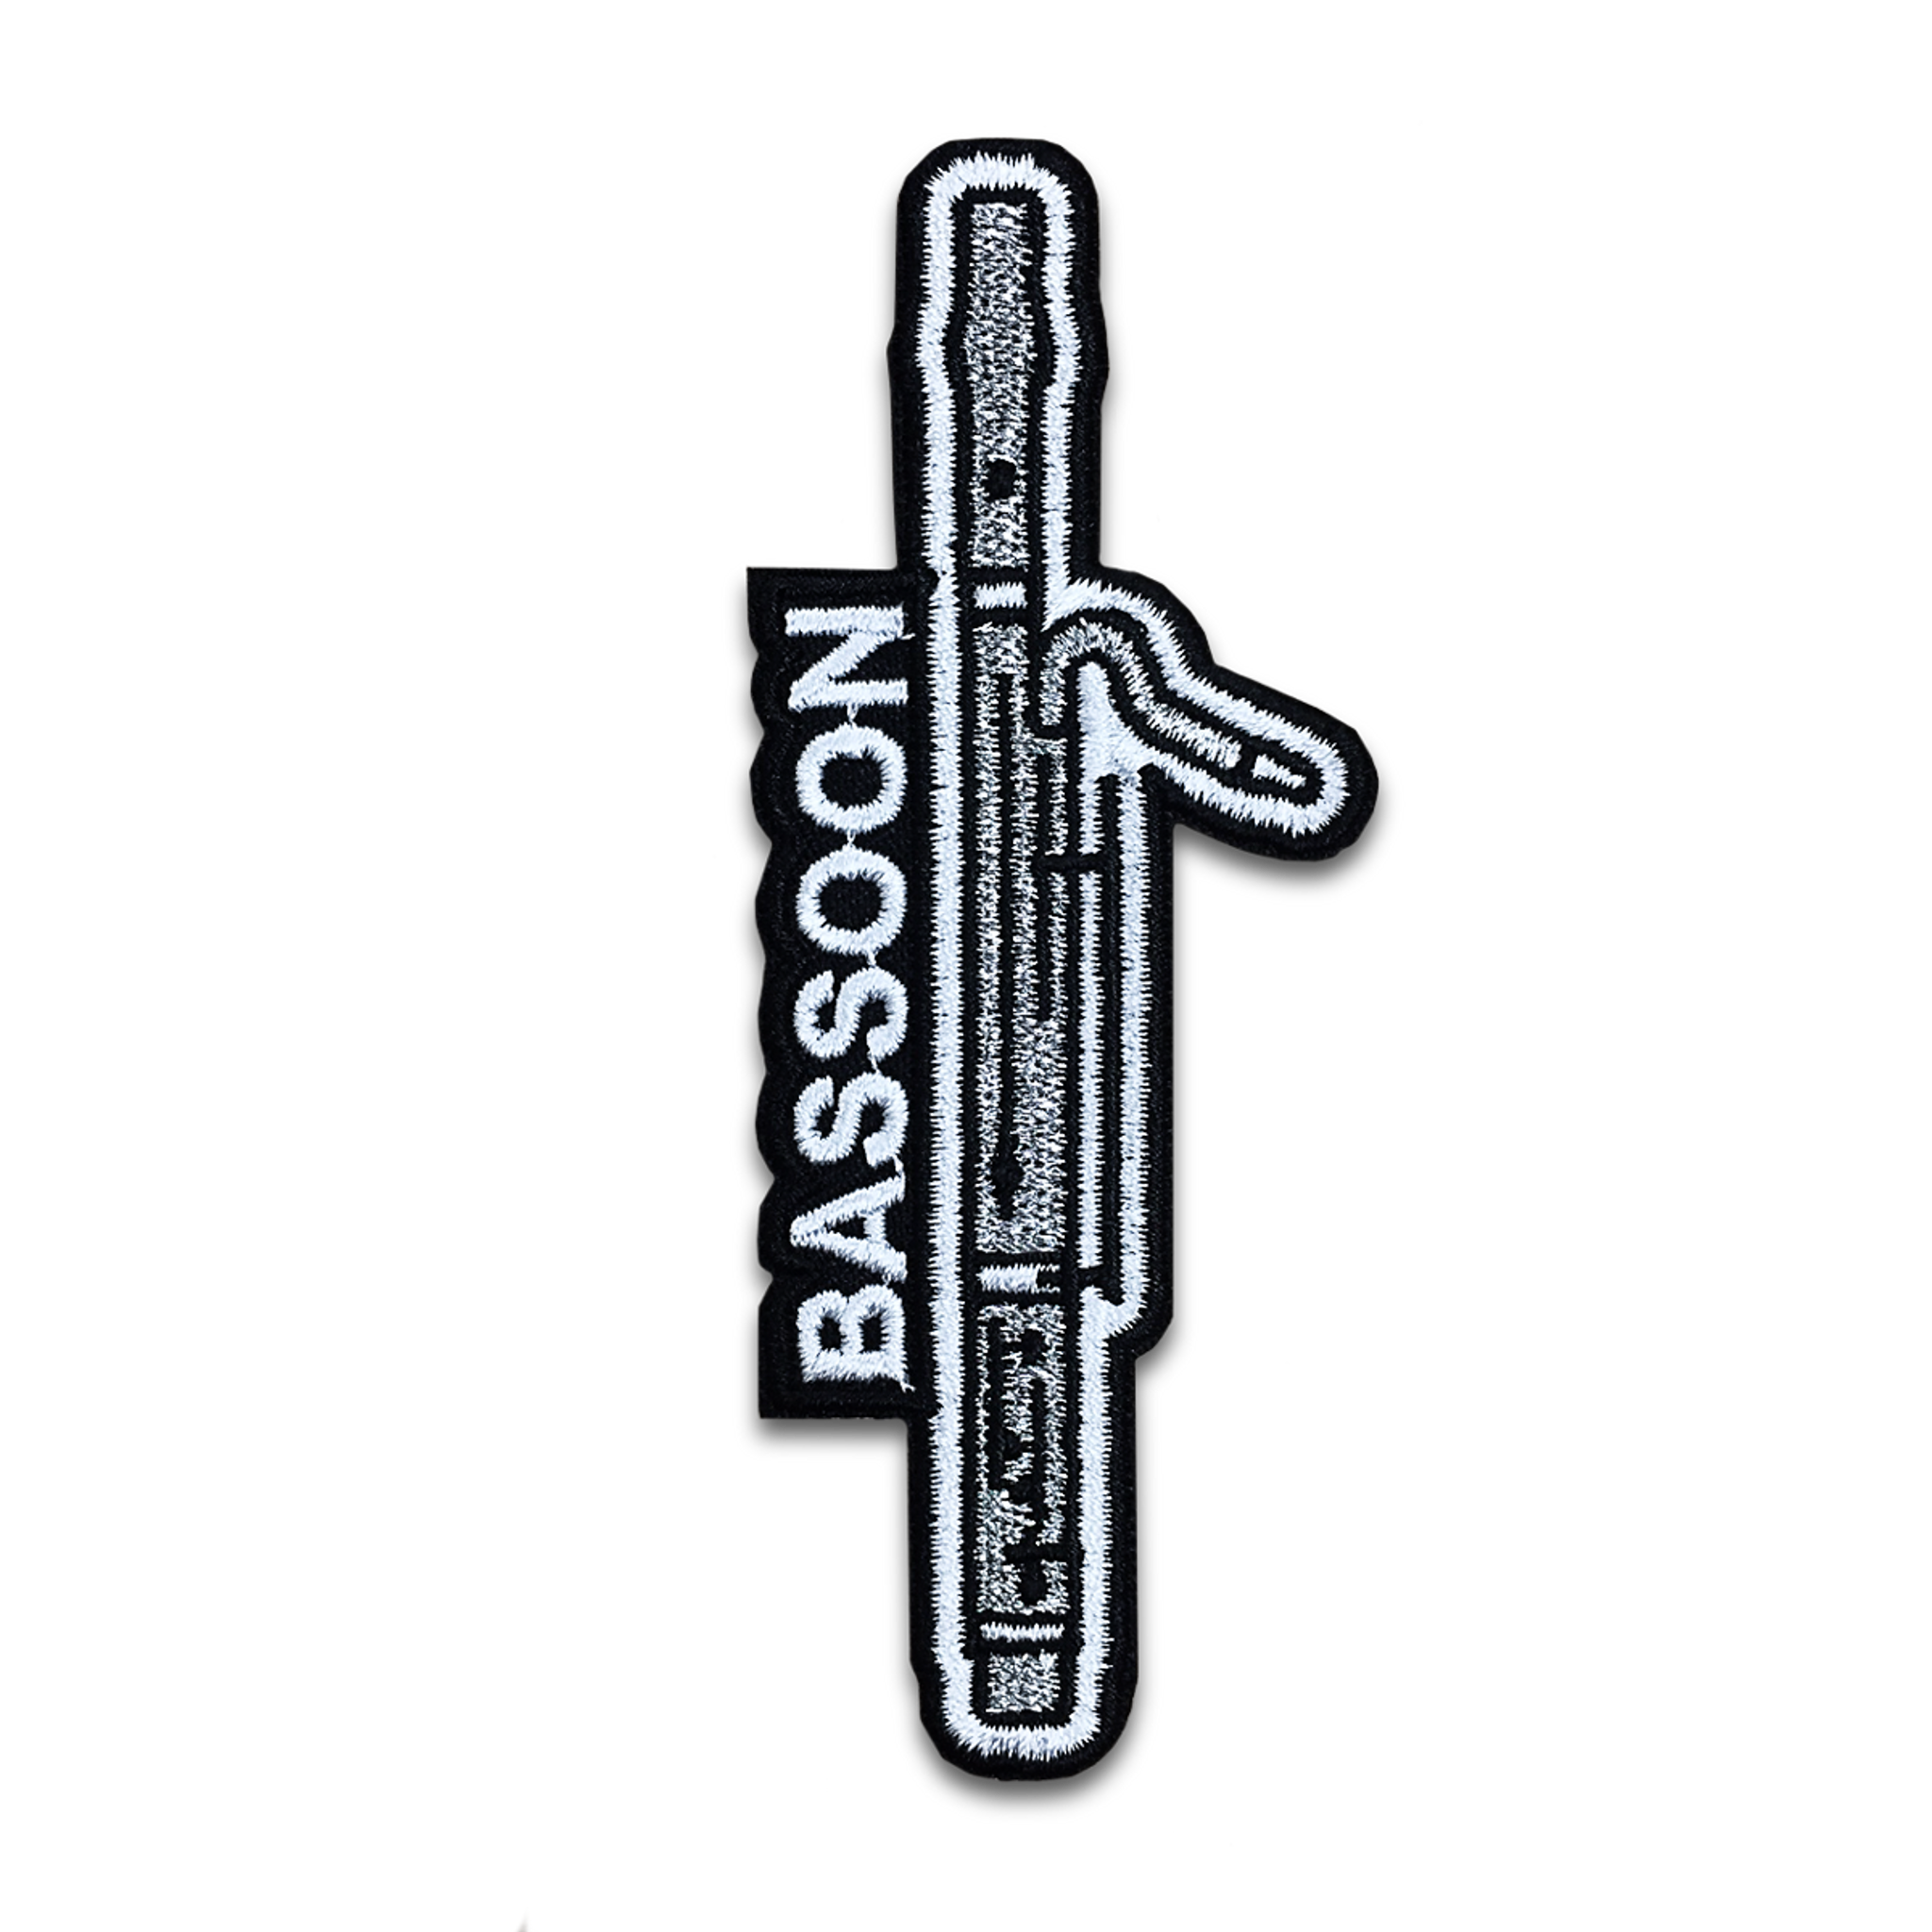 Bassoon Instrument Patch